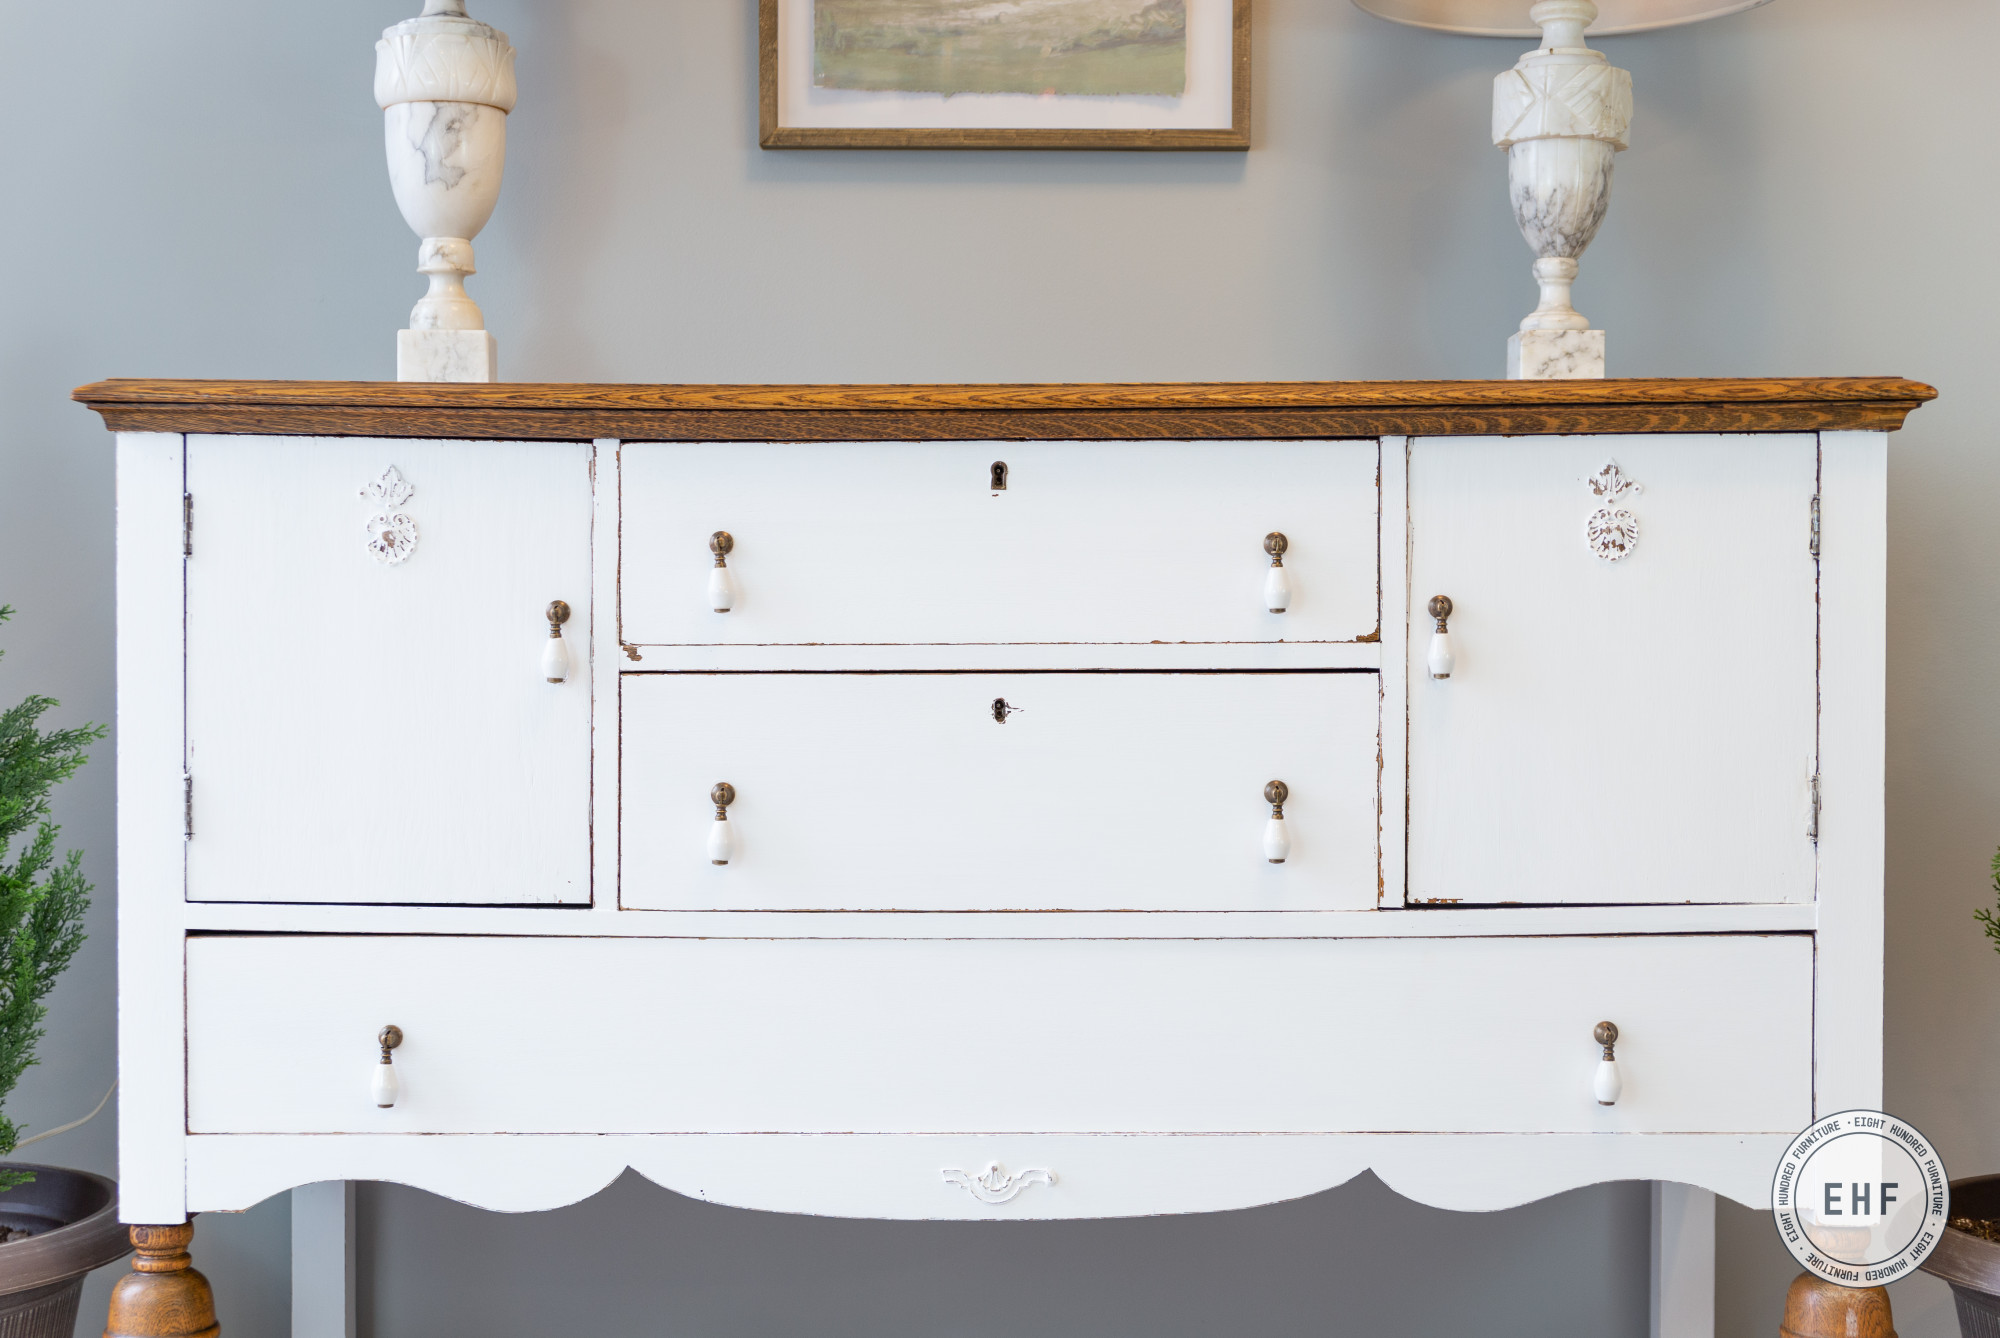 Antique oak buffet in General Finishes Brushable White Enamel in Flat, Eight Hundred Furniture, Drop Pulls